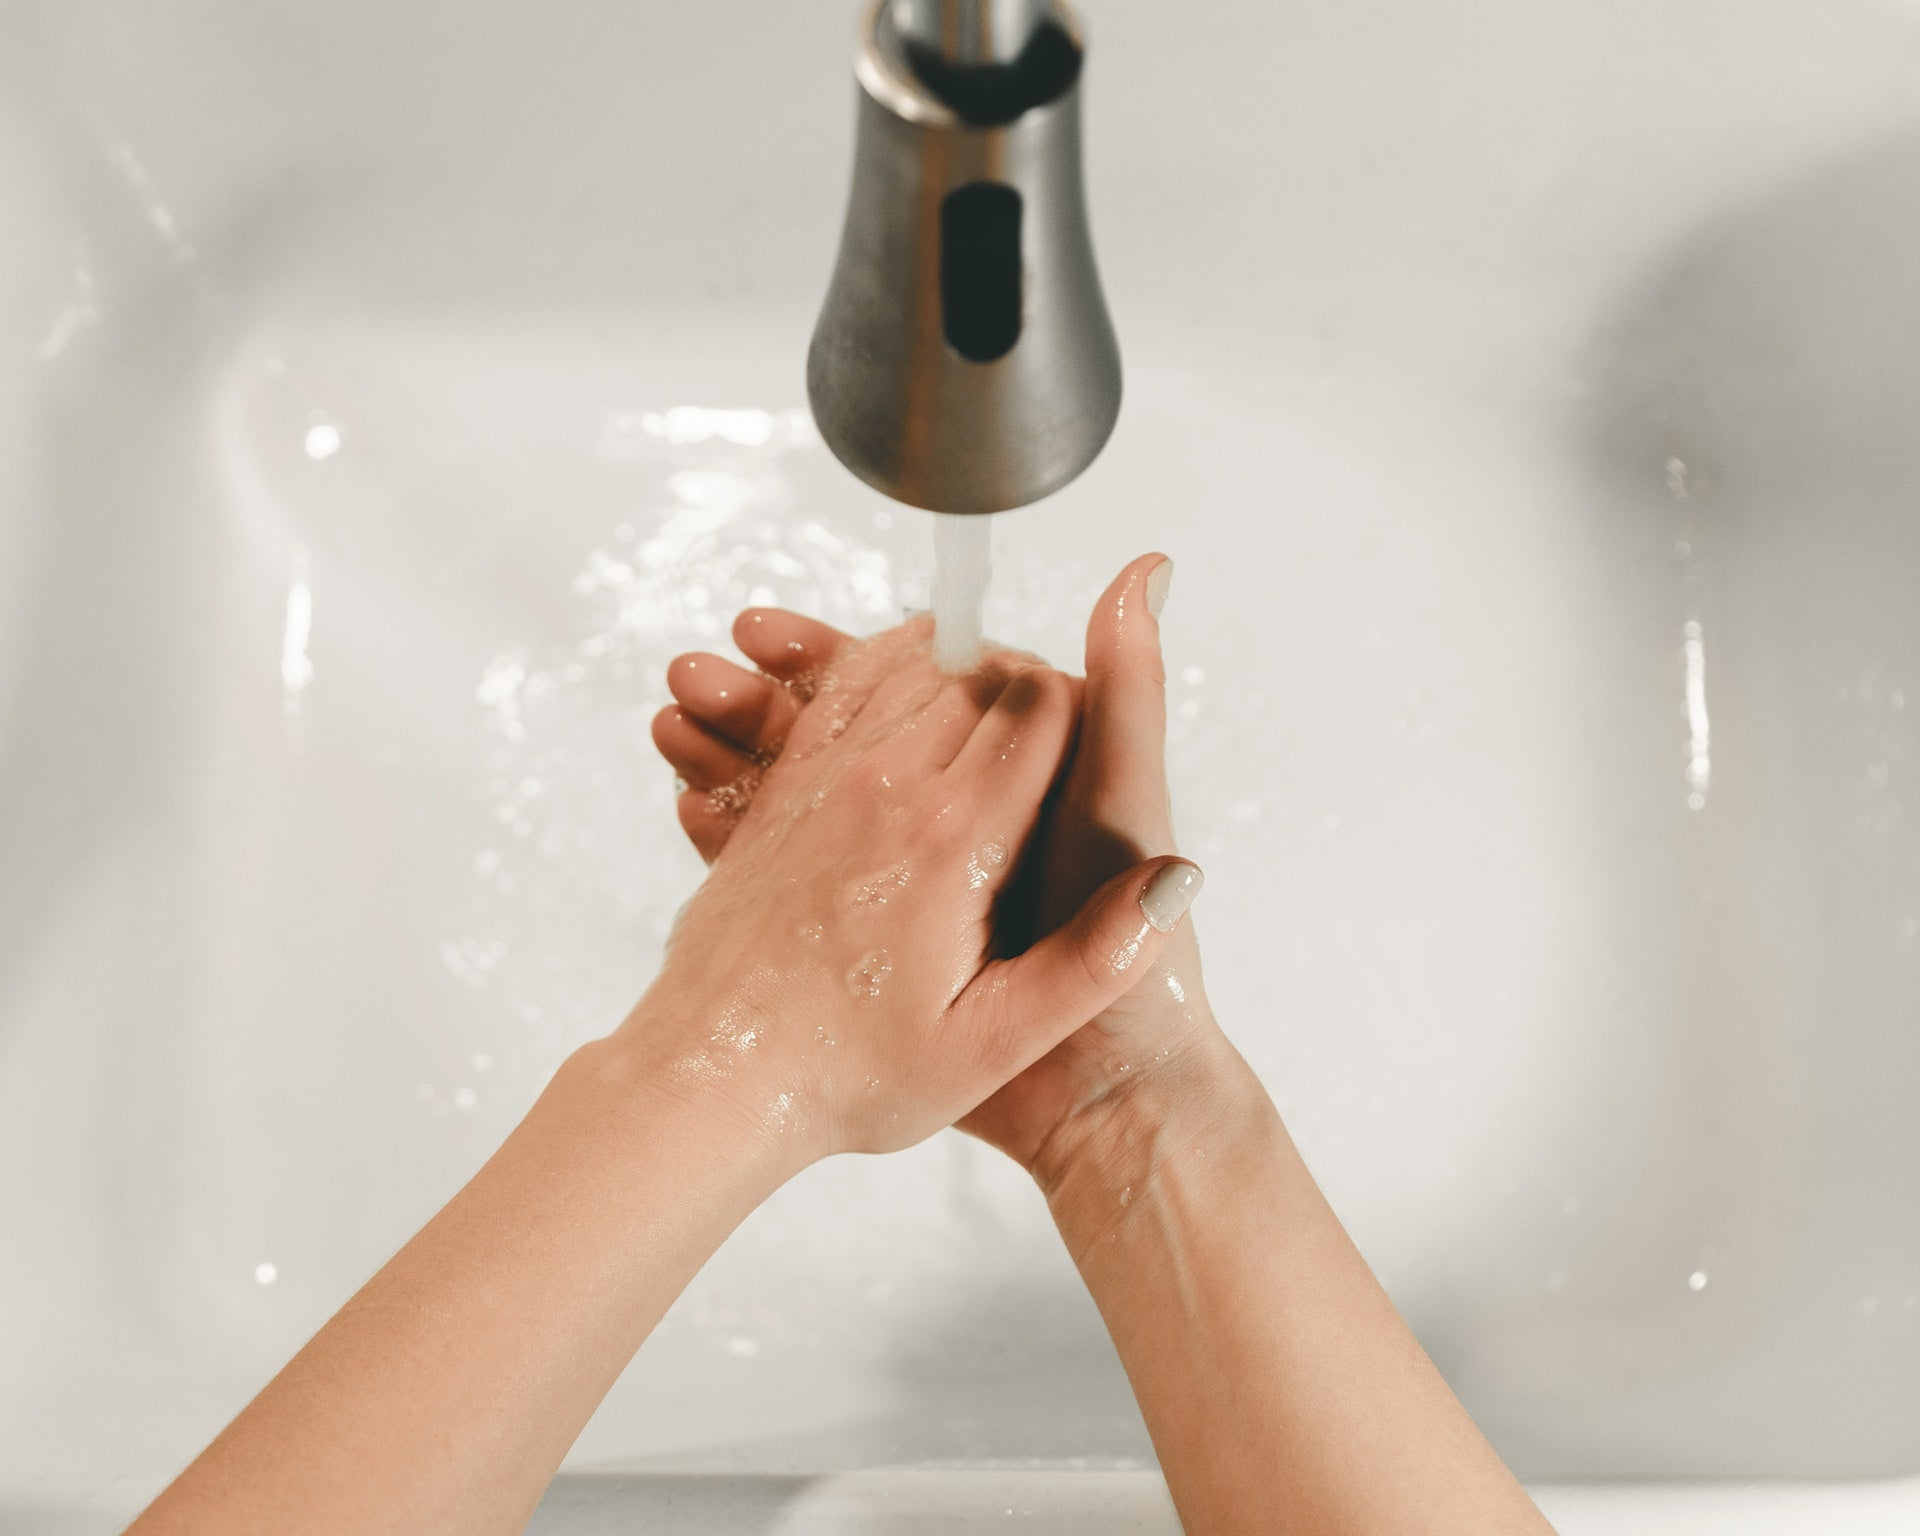 pair of hands washing under running faucet white sink